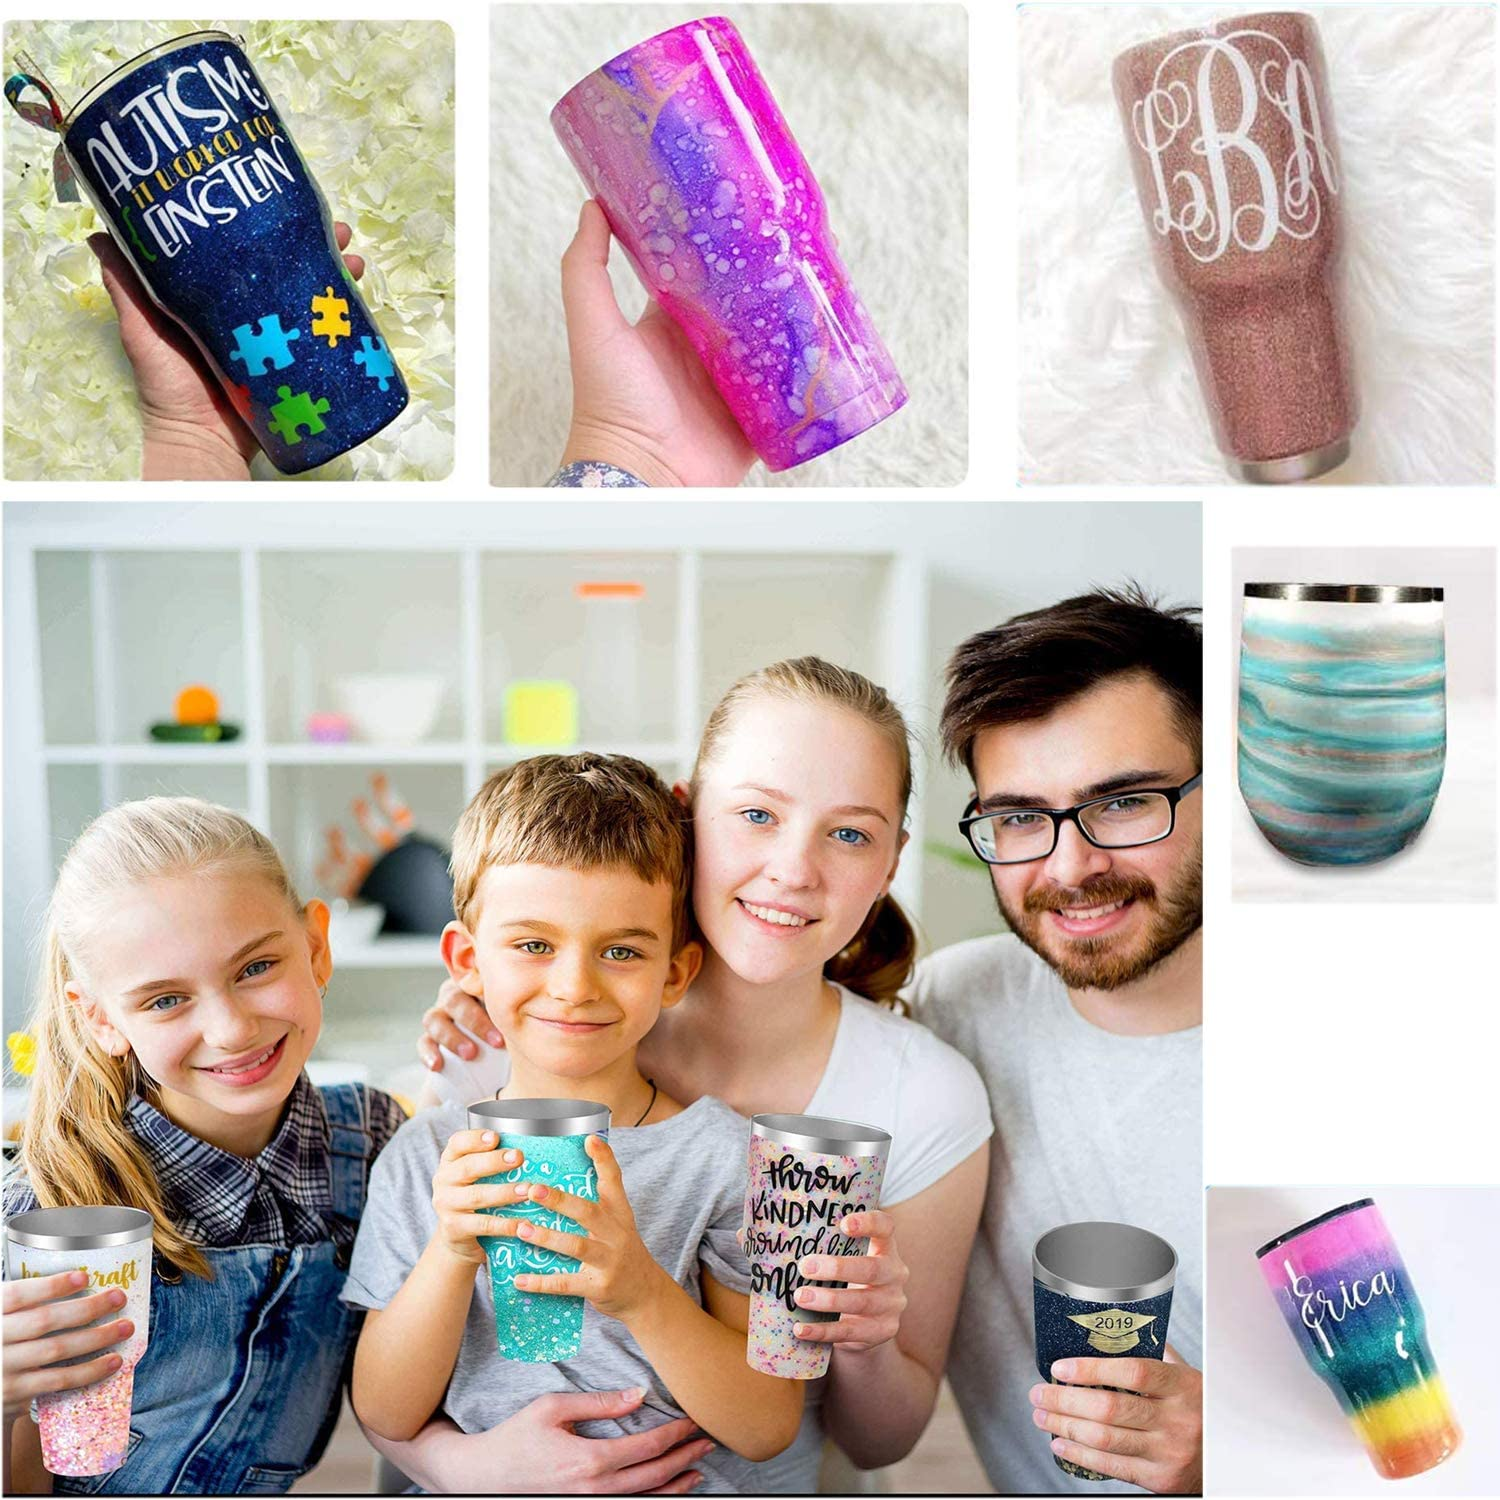 Tumbler Turner Cup Turner Cuptisserie Cup Spinner Tumbler Rotisserie Kits with Drying Rack/& Foam Replacement for Mugs Cups Tumbler Epoxy Resin Custom Glitter Tumblers /& Decals